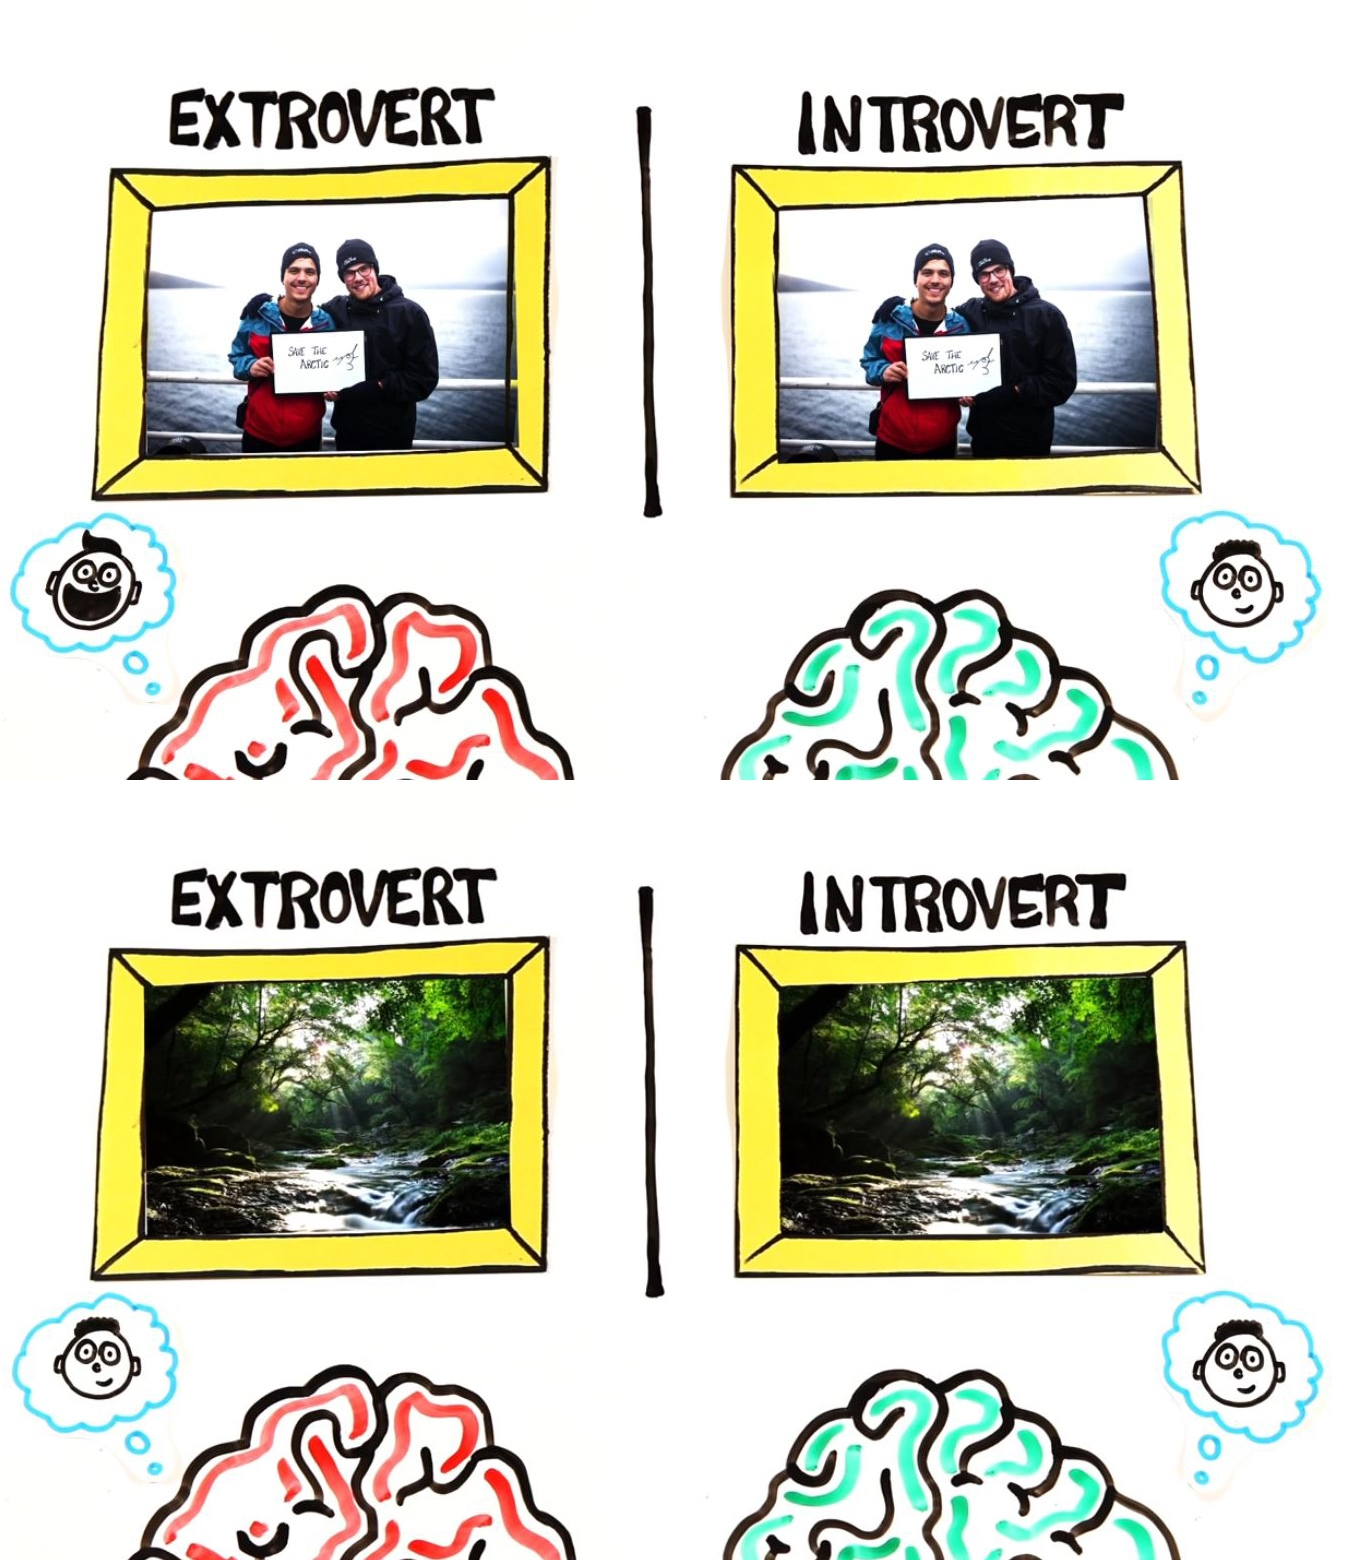 introverts-vs-extroverts-virtualdr